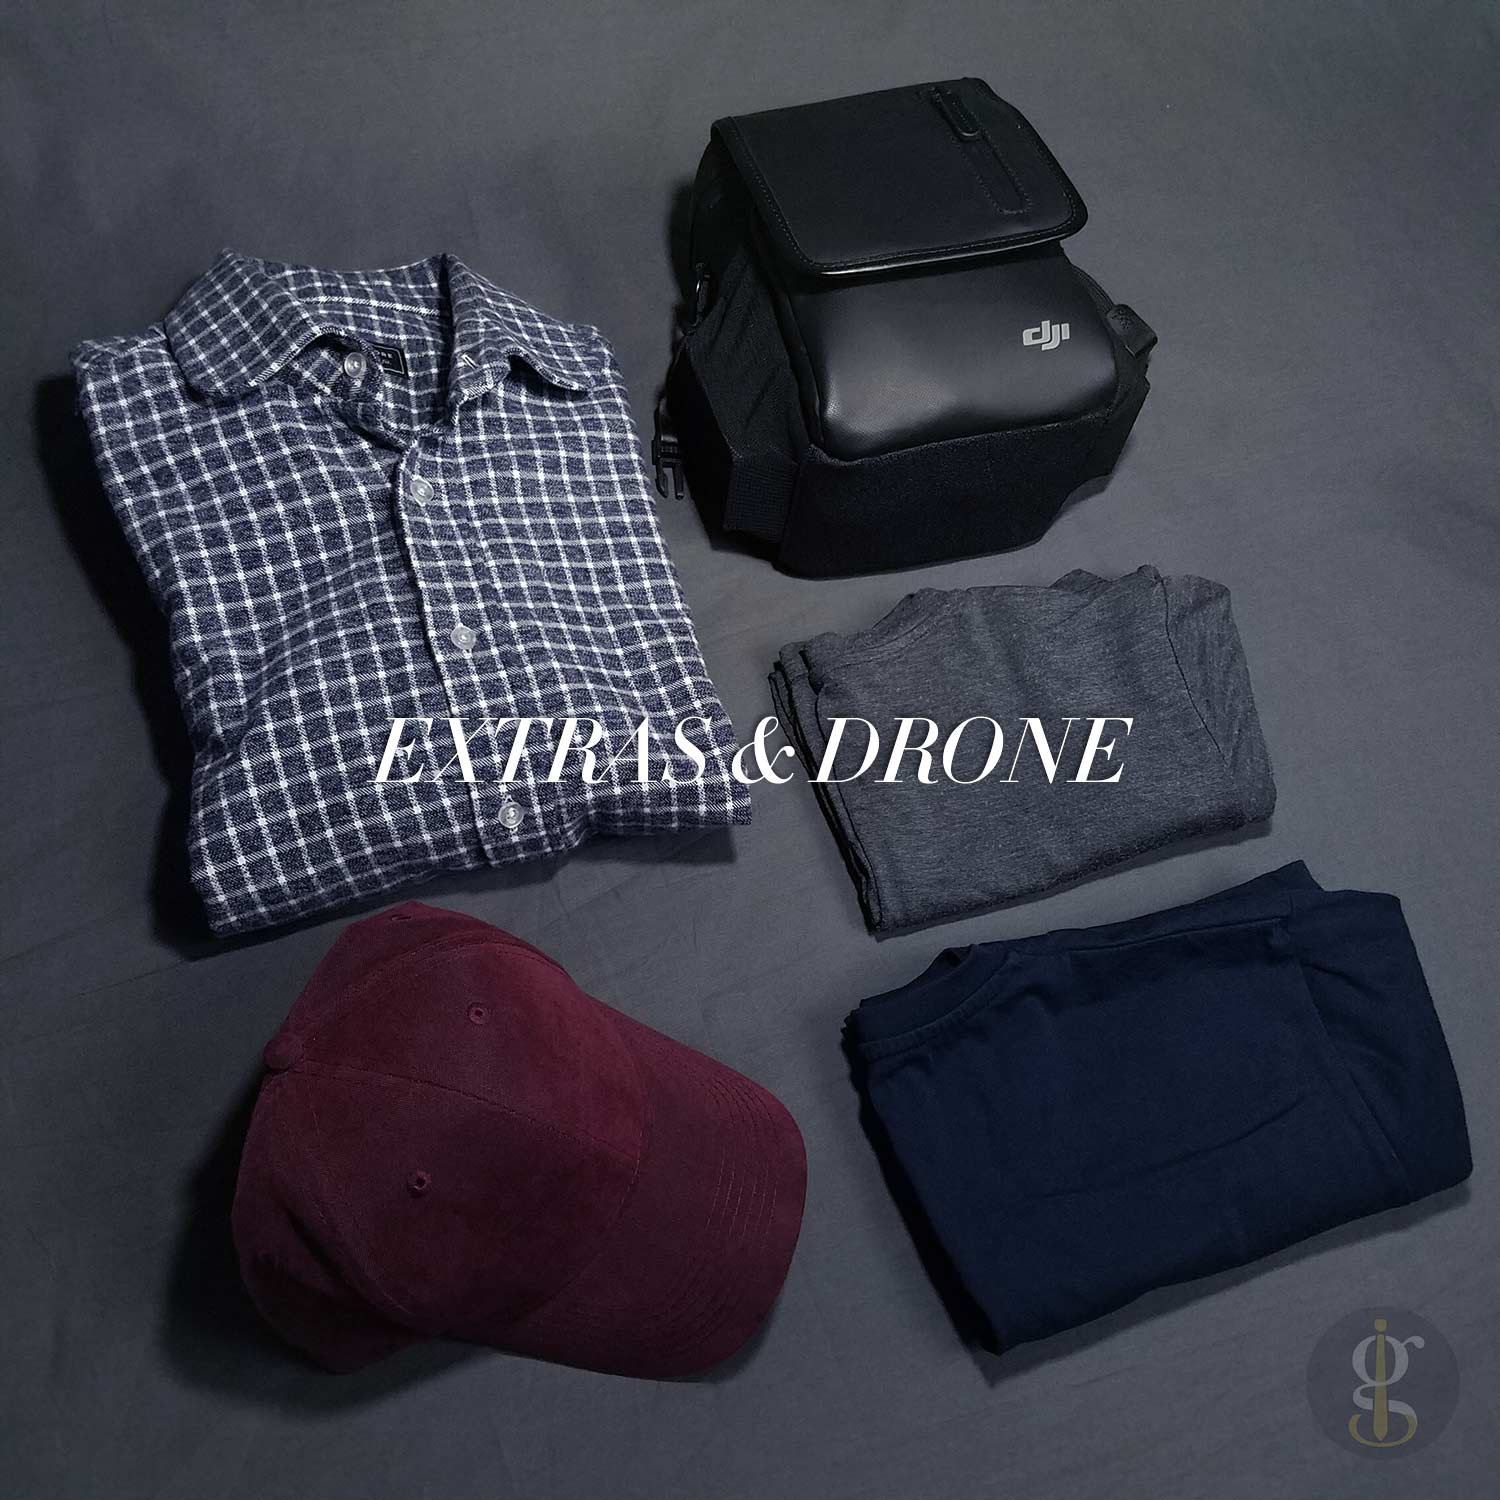 Extras & Drone   GENTLEMAN WITHIN